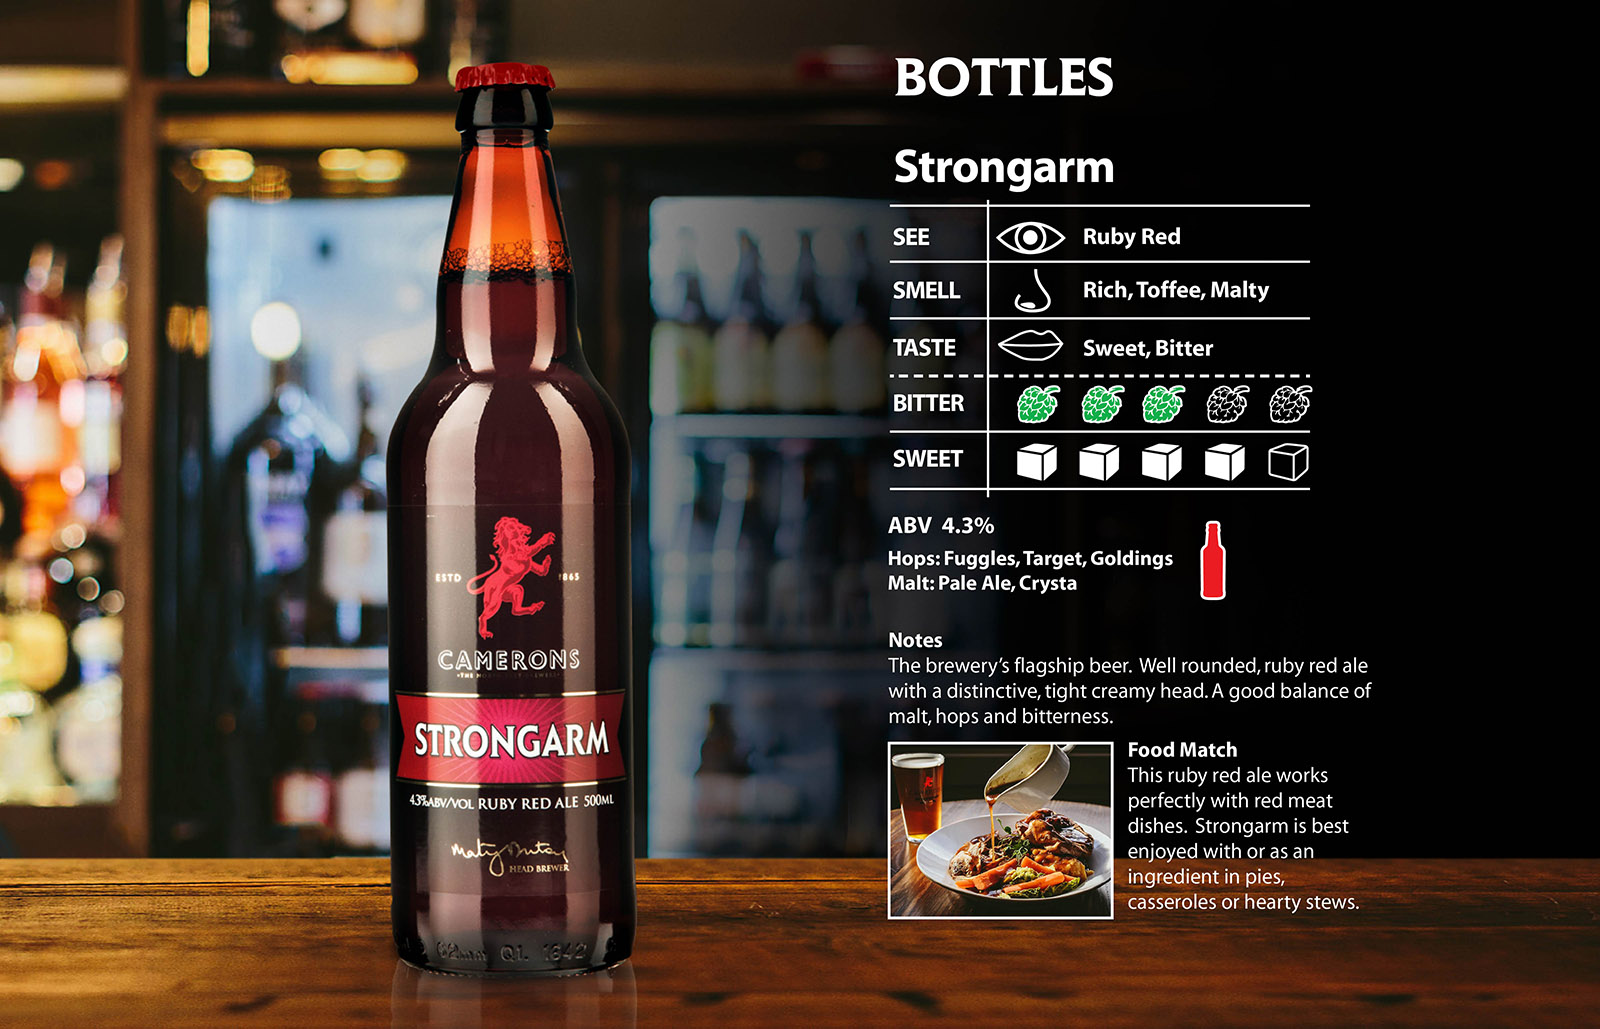 strongarm bottle - camerons brewery